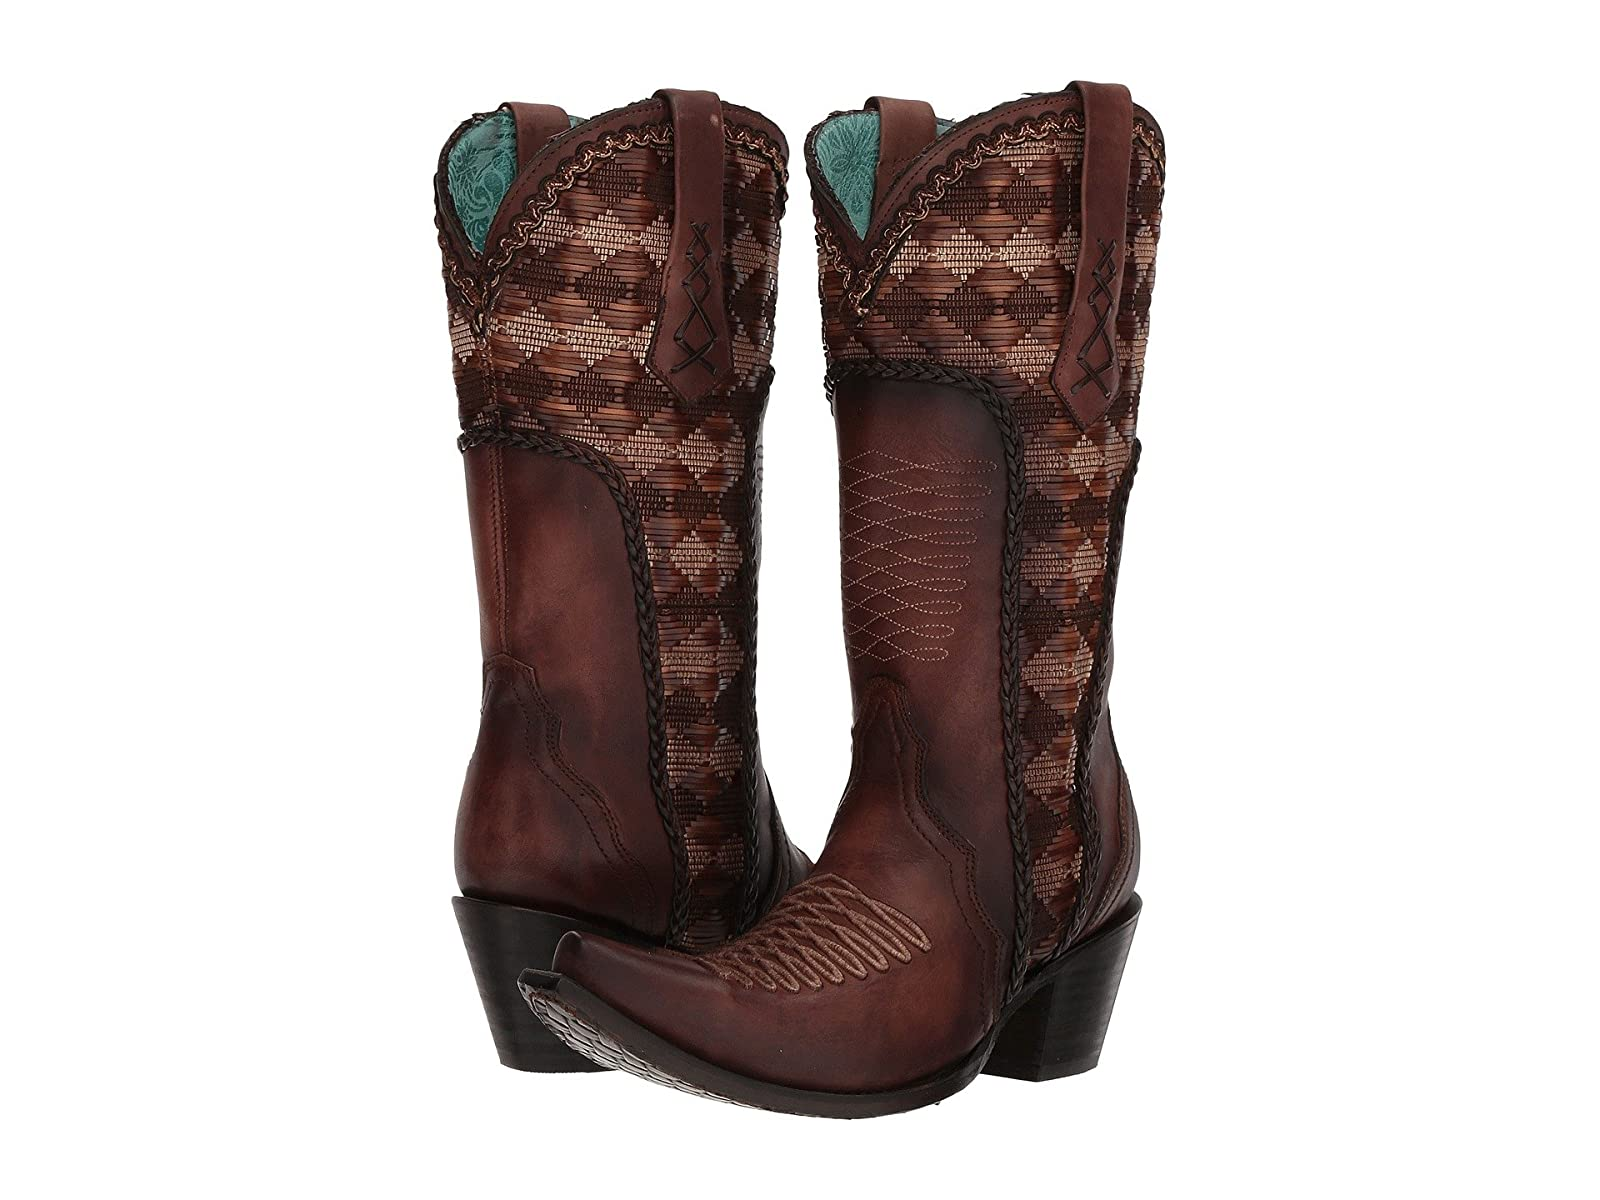 Corral Boots C3384Affordable and distinctive shoes